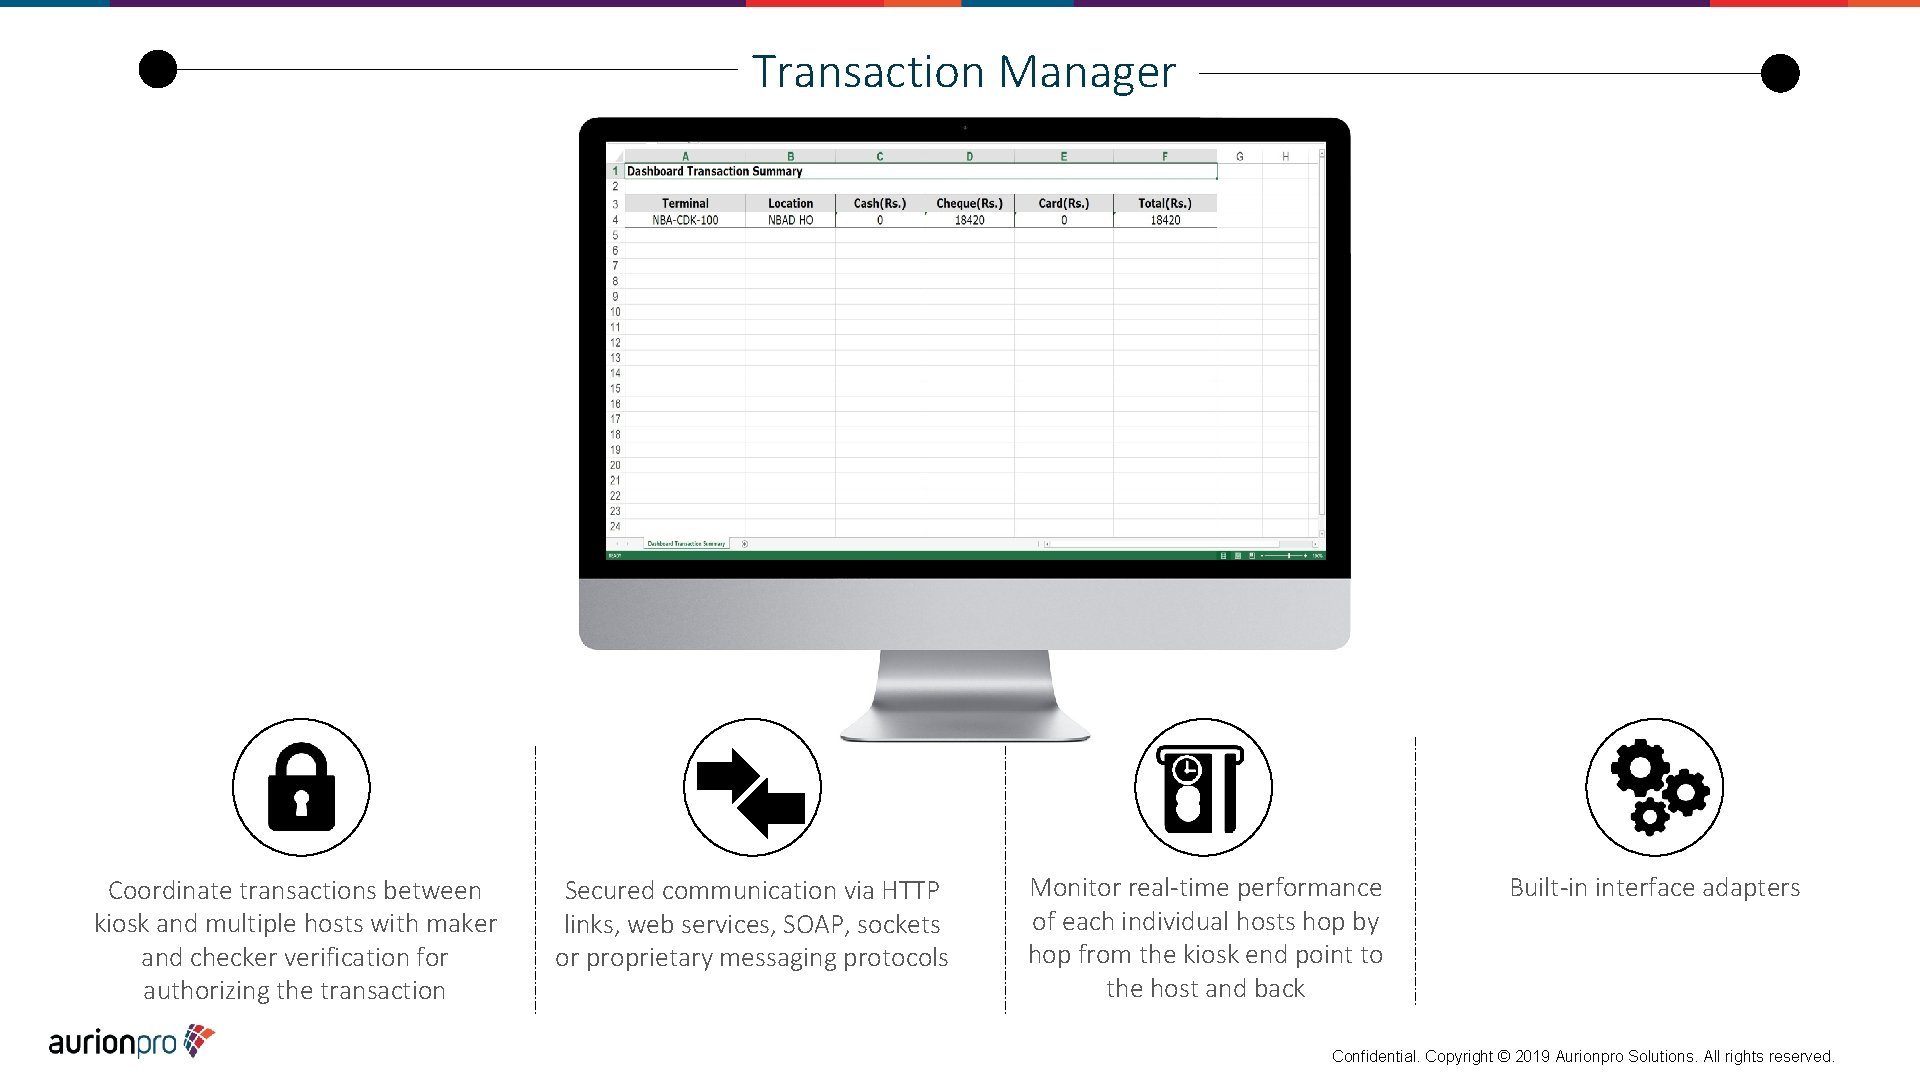 Transaction Manager Coordinate transactions between kiosk and multiple hosts with maker and checker verification